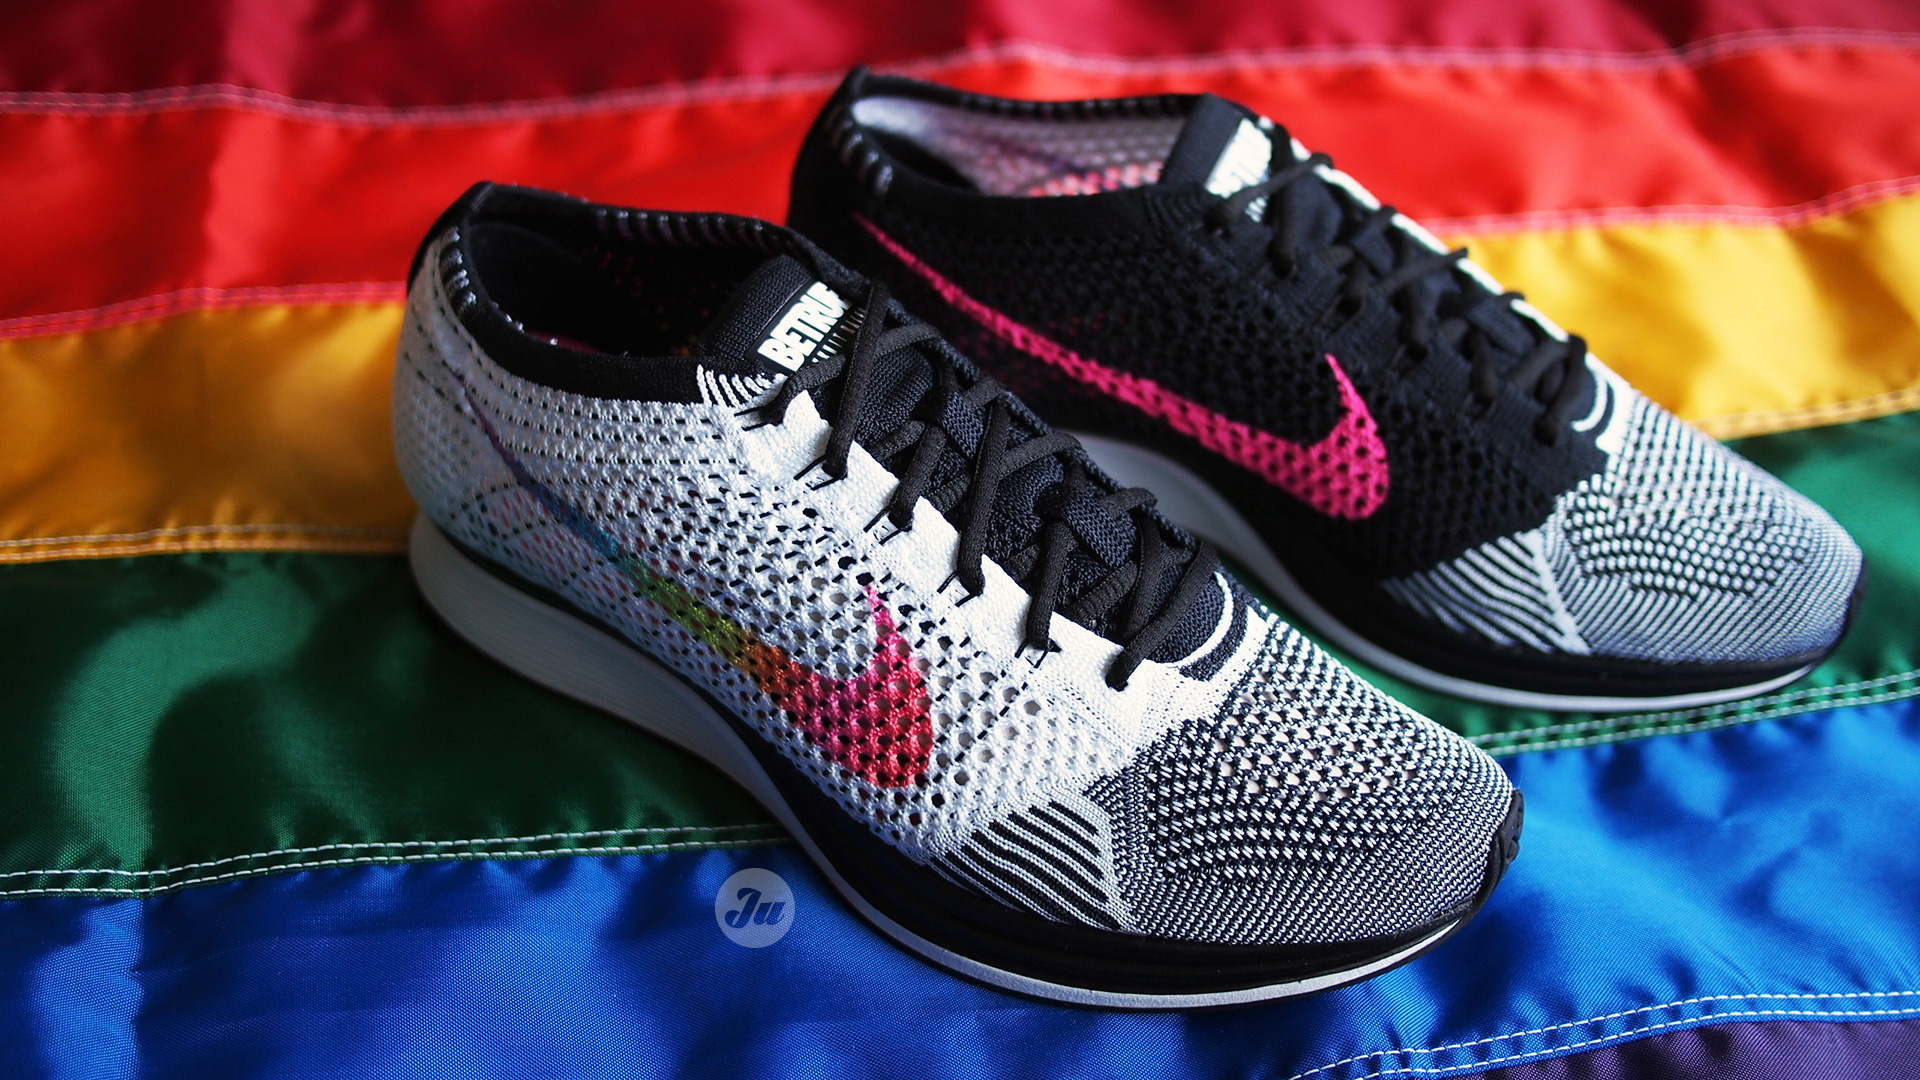 f28d76322490 NikeLab VaporMax   Flyknit Racer BETRUE on-feet videos for Pride month